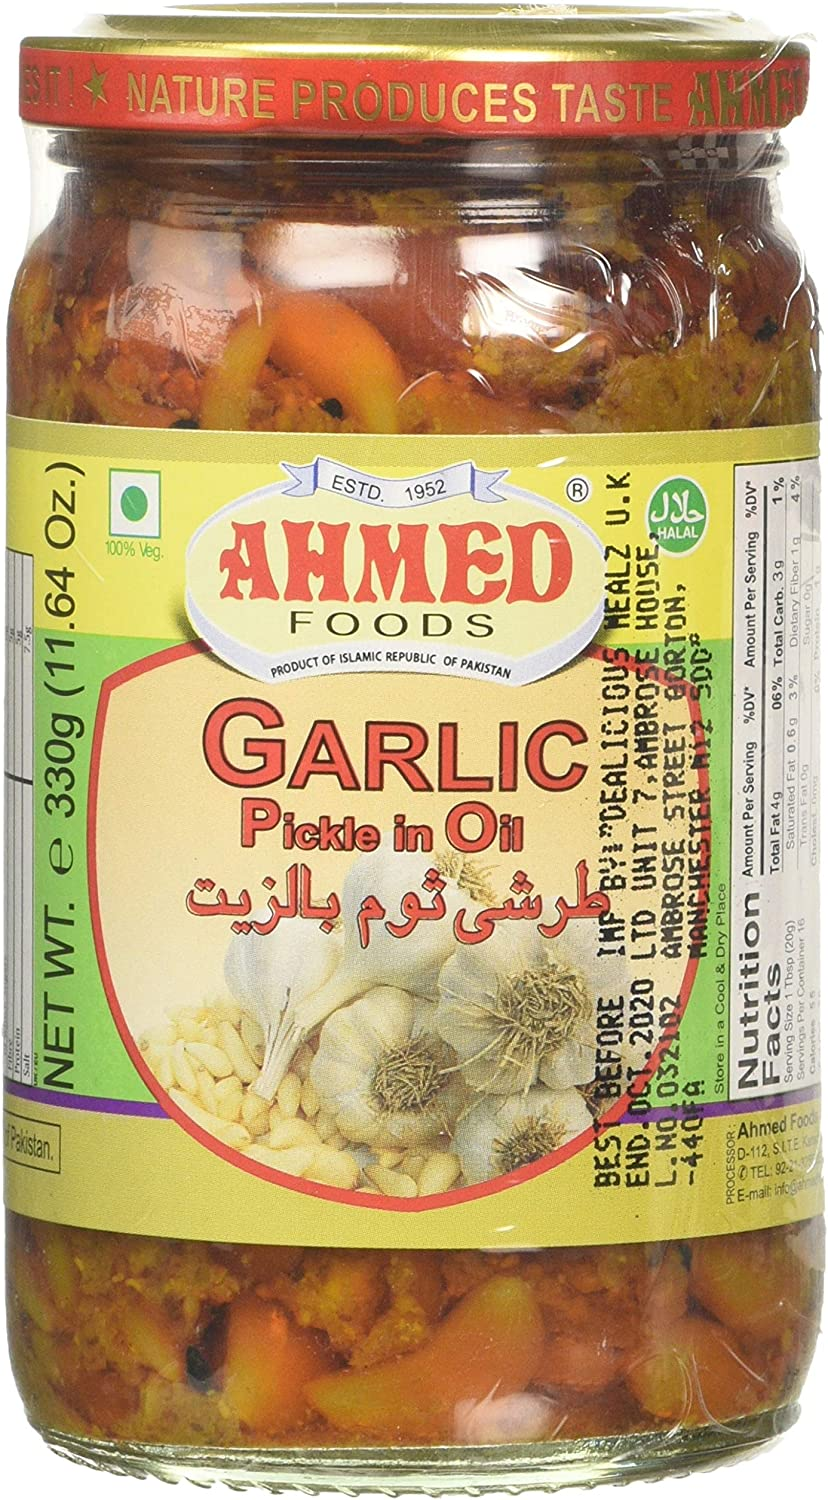 Ahmed Foods Garlic Pickle in Oil, 330 g: Amazon.co.uk: Grocery